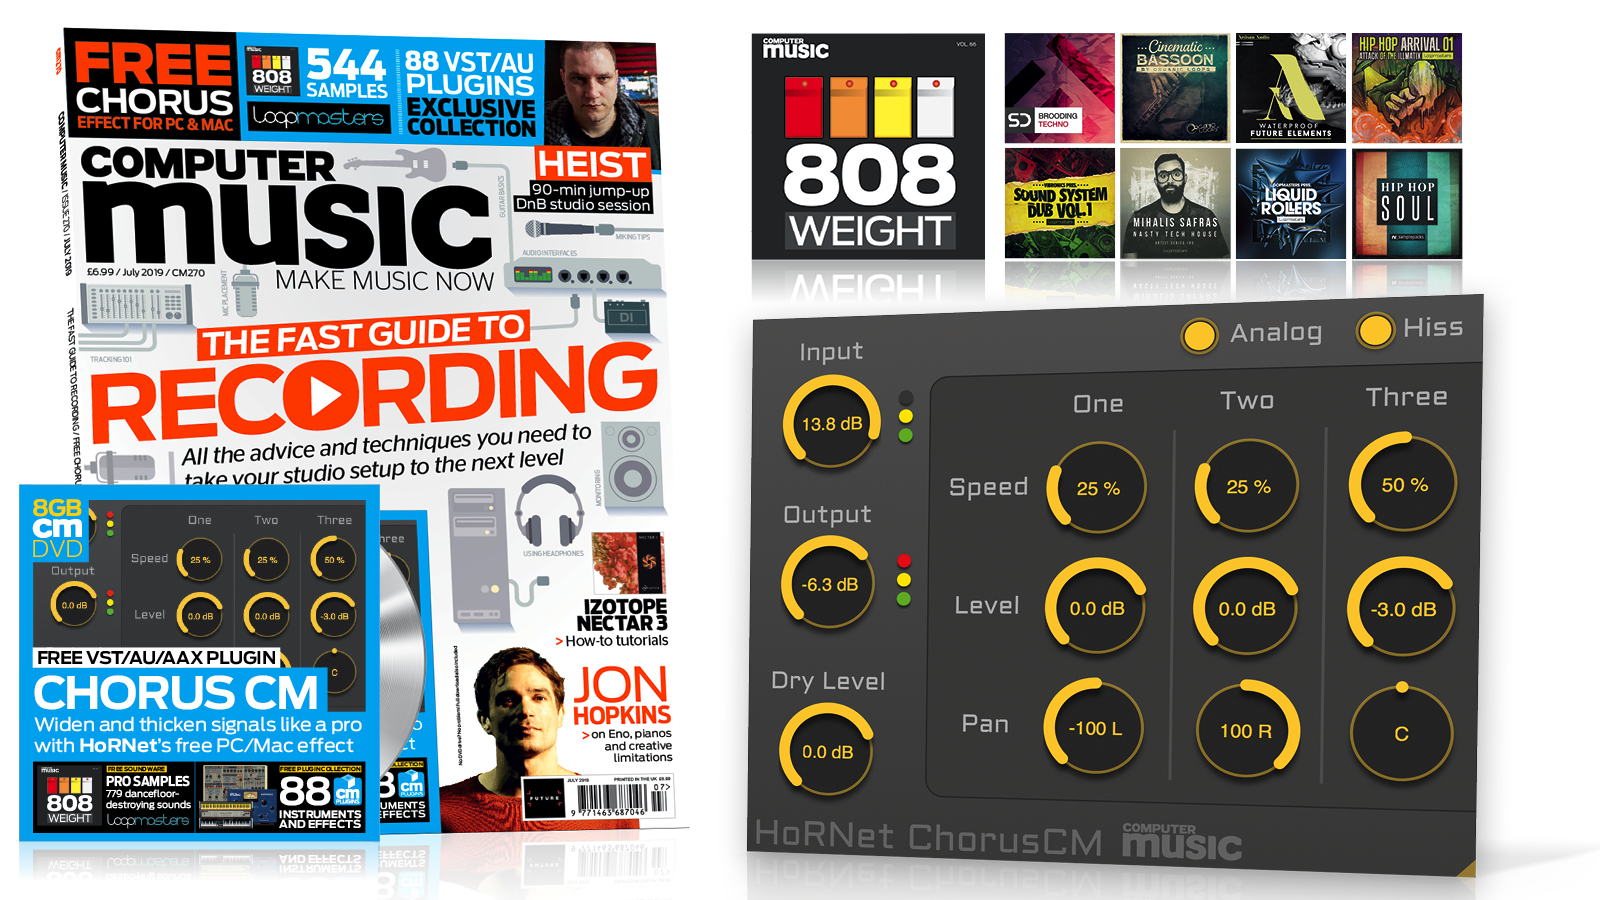 THE FAST GUIDE TO RECORDING – Computer Music issue 270 is out now